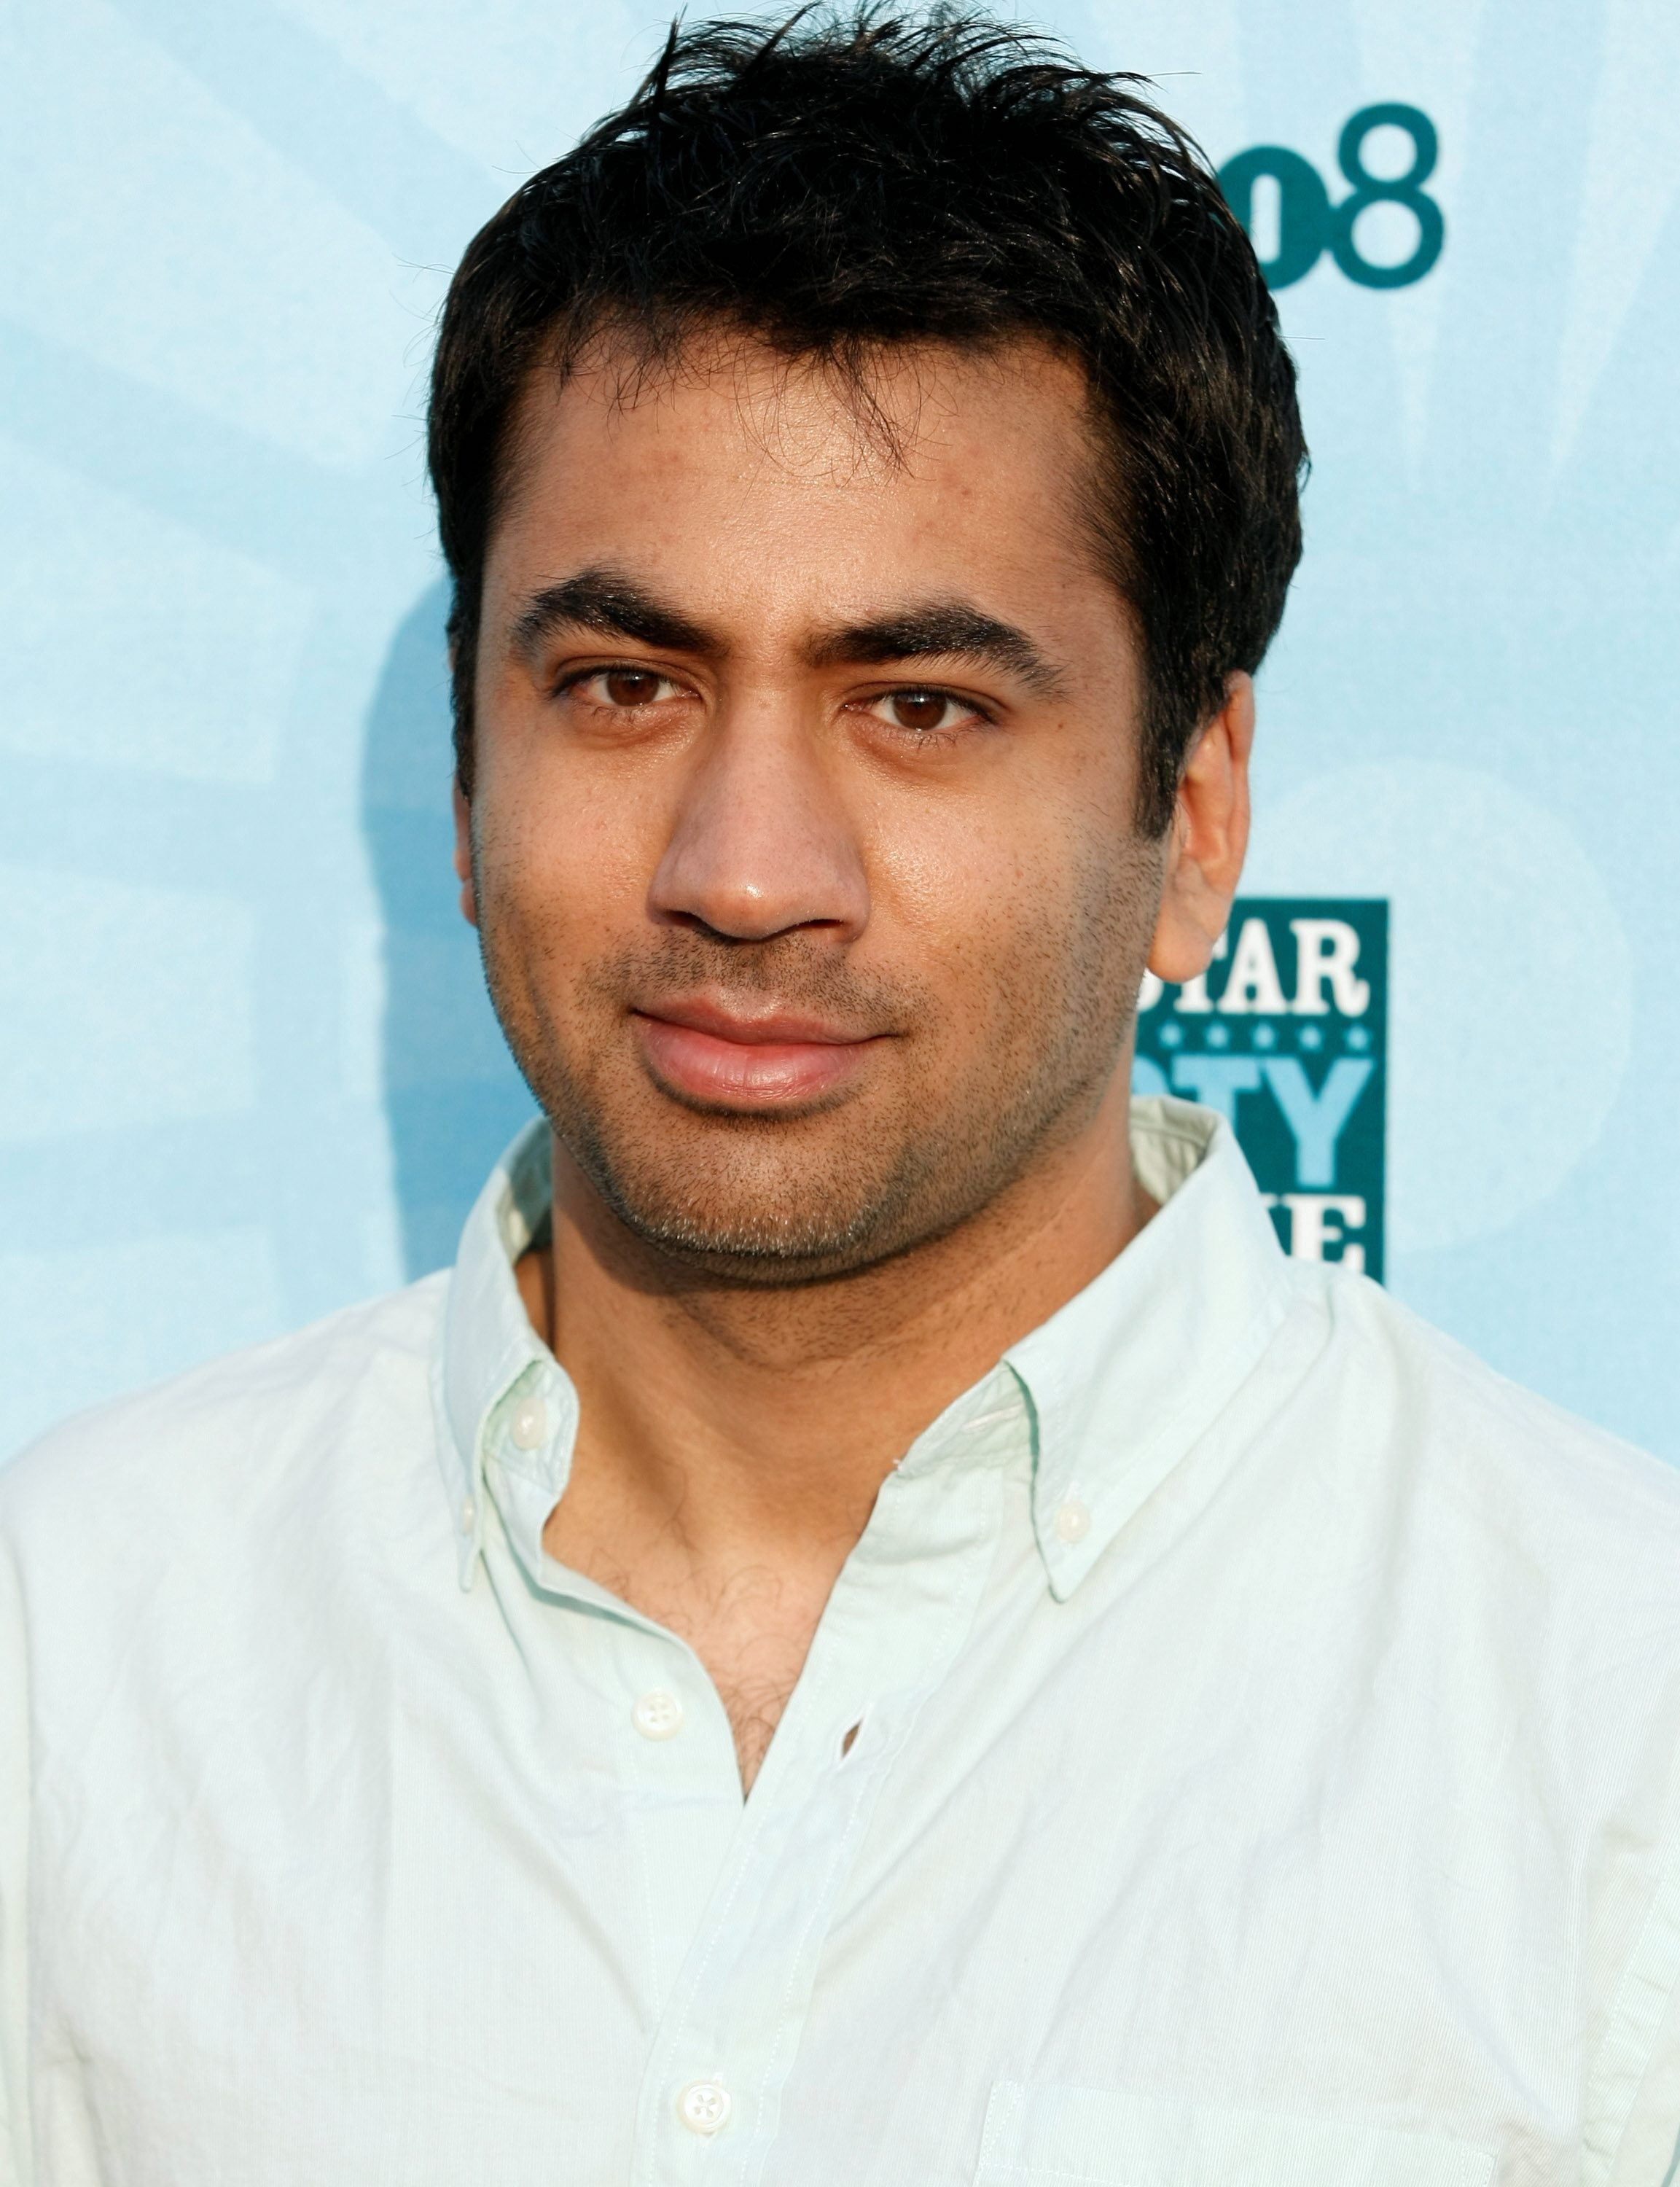 Actor Kal Penn, Exobama Official, Blasted For 'stop And